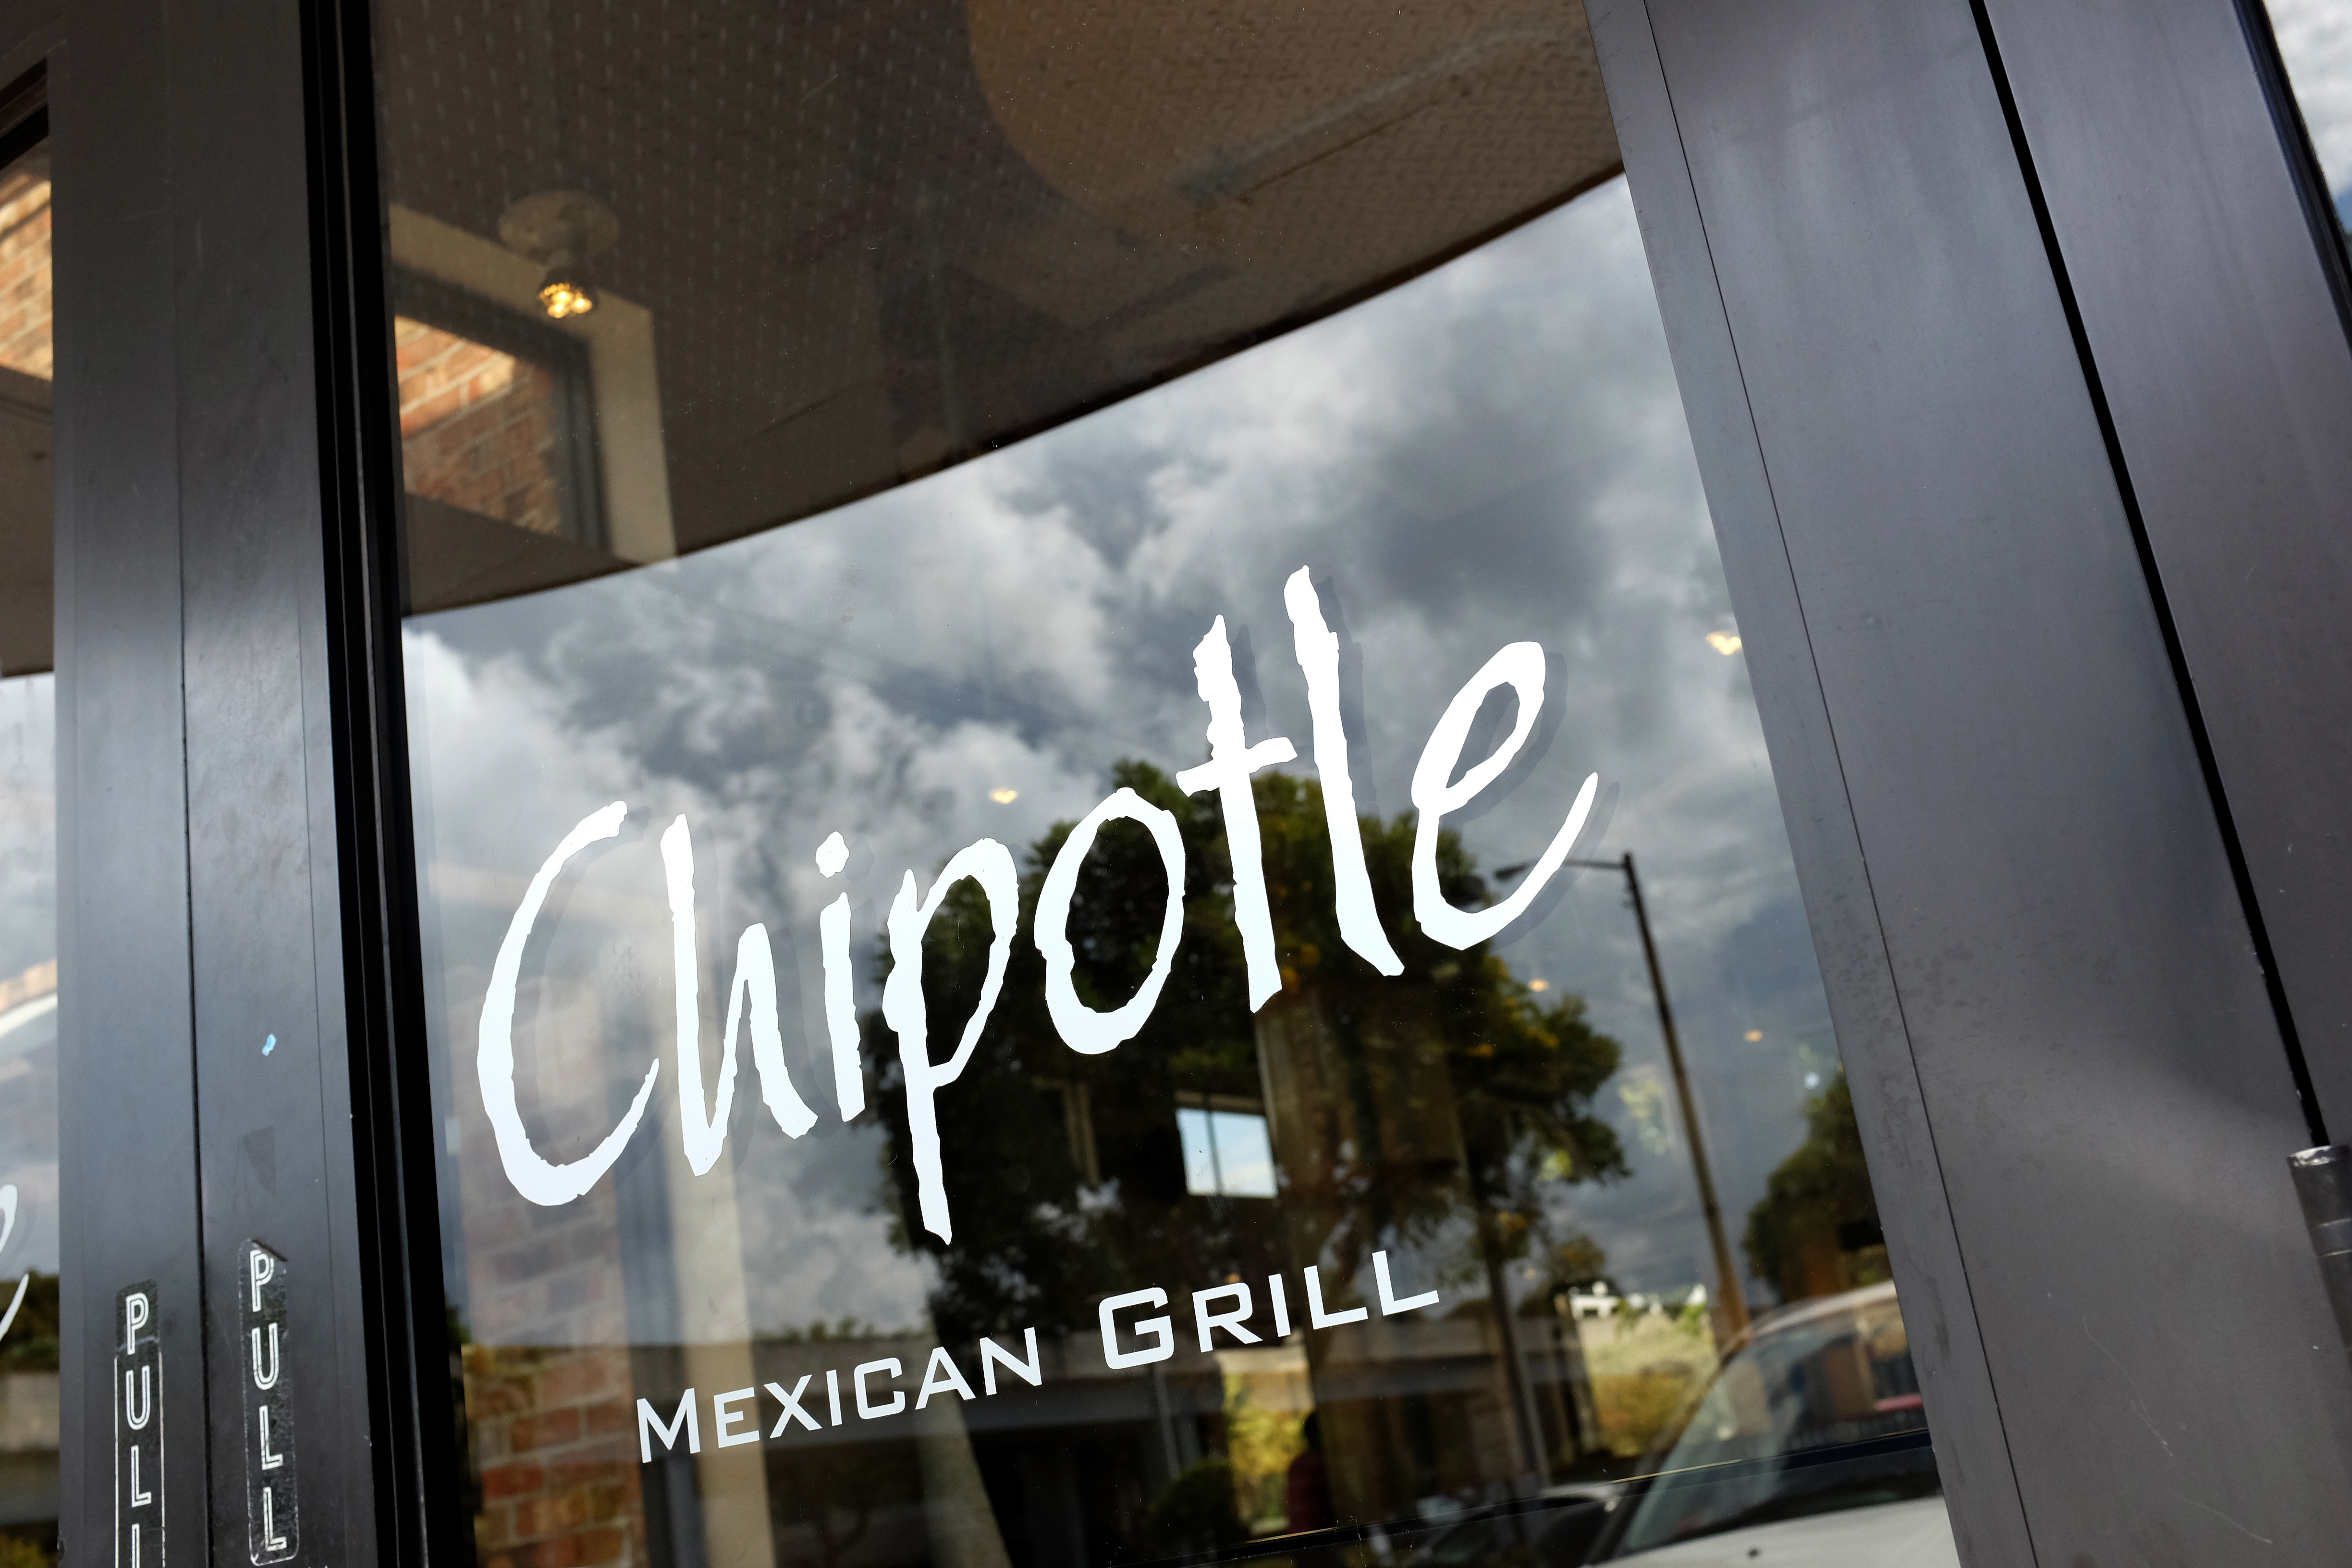 A Chipotle restaurant is seen on March 5, 2014 in Miami, Florida.